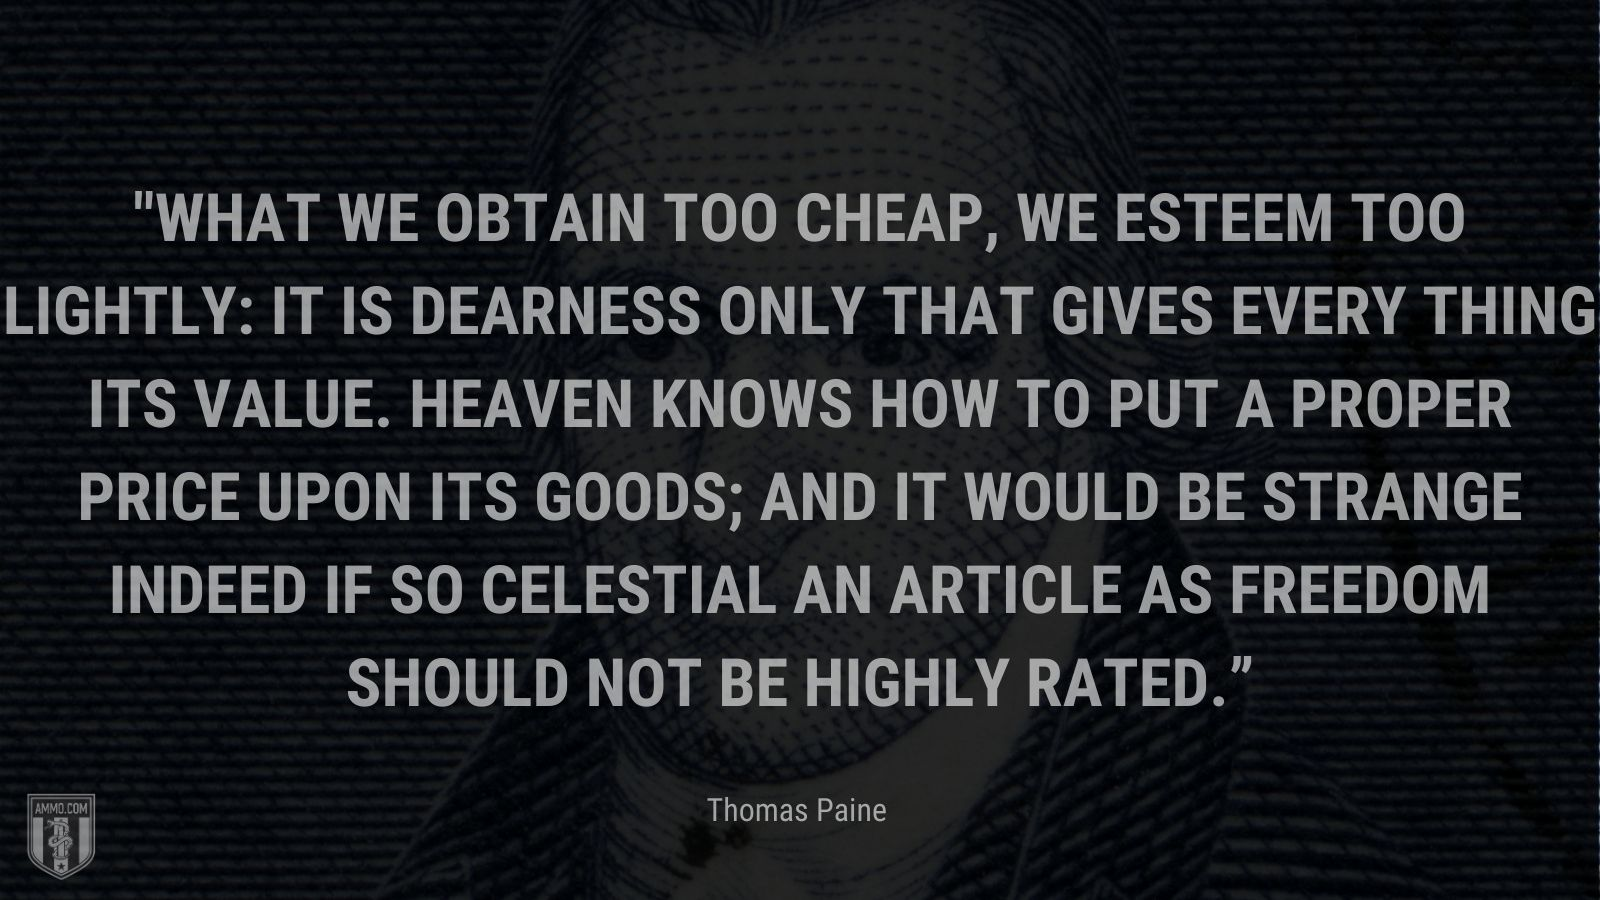 """""""What we obtain too cheap, we esteem too lightly: it is dearness only that gives every thing its value. Heaven knows how to put a proper price upon its goods; and it would be strange indeed if so celestial an article as freedom should not be highly rated."""" - Thomas Paine"""